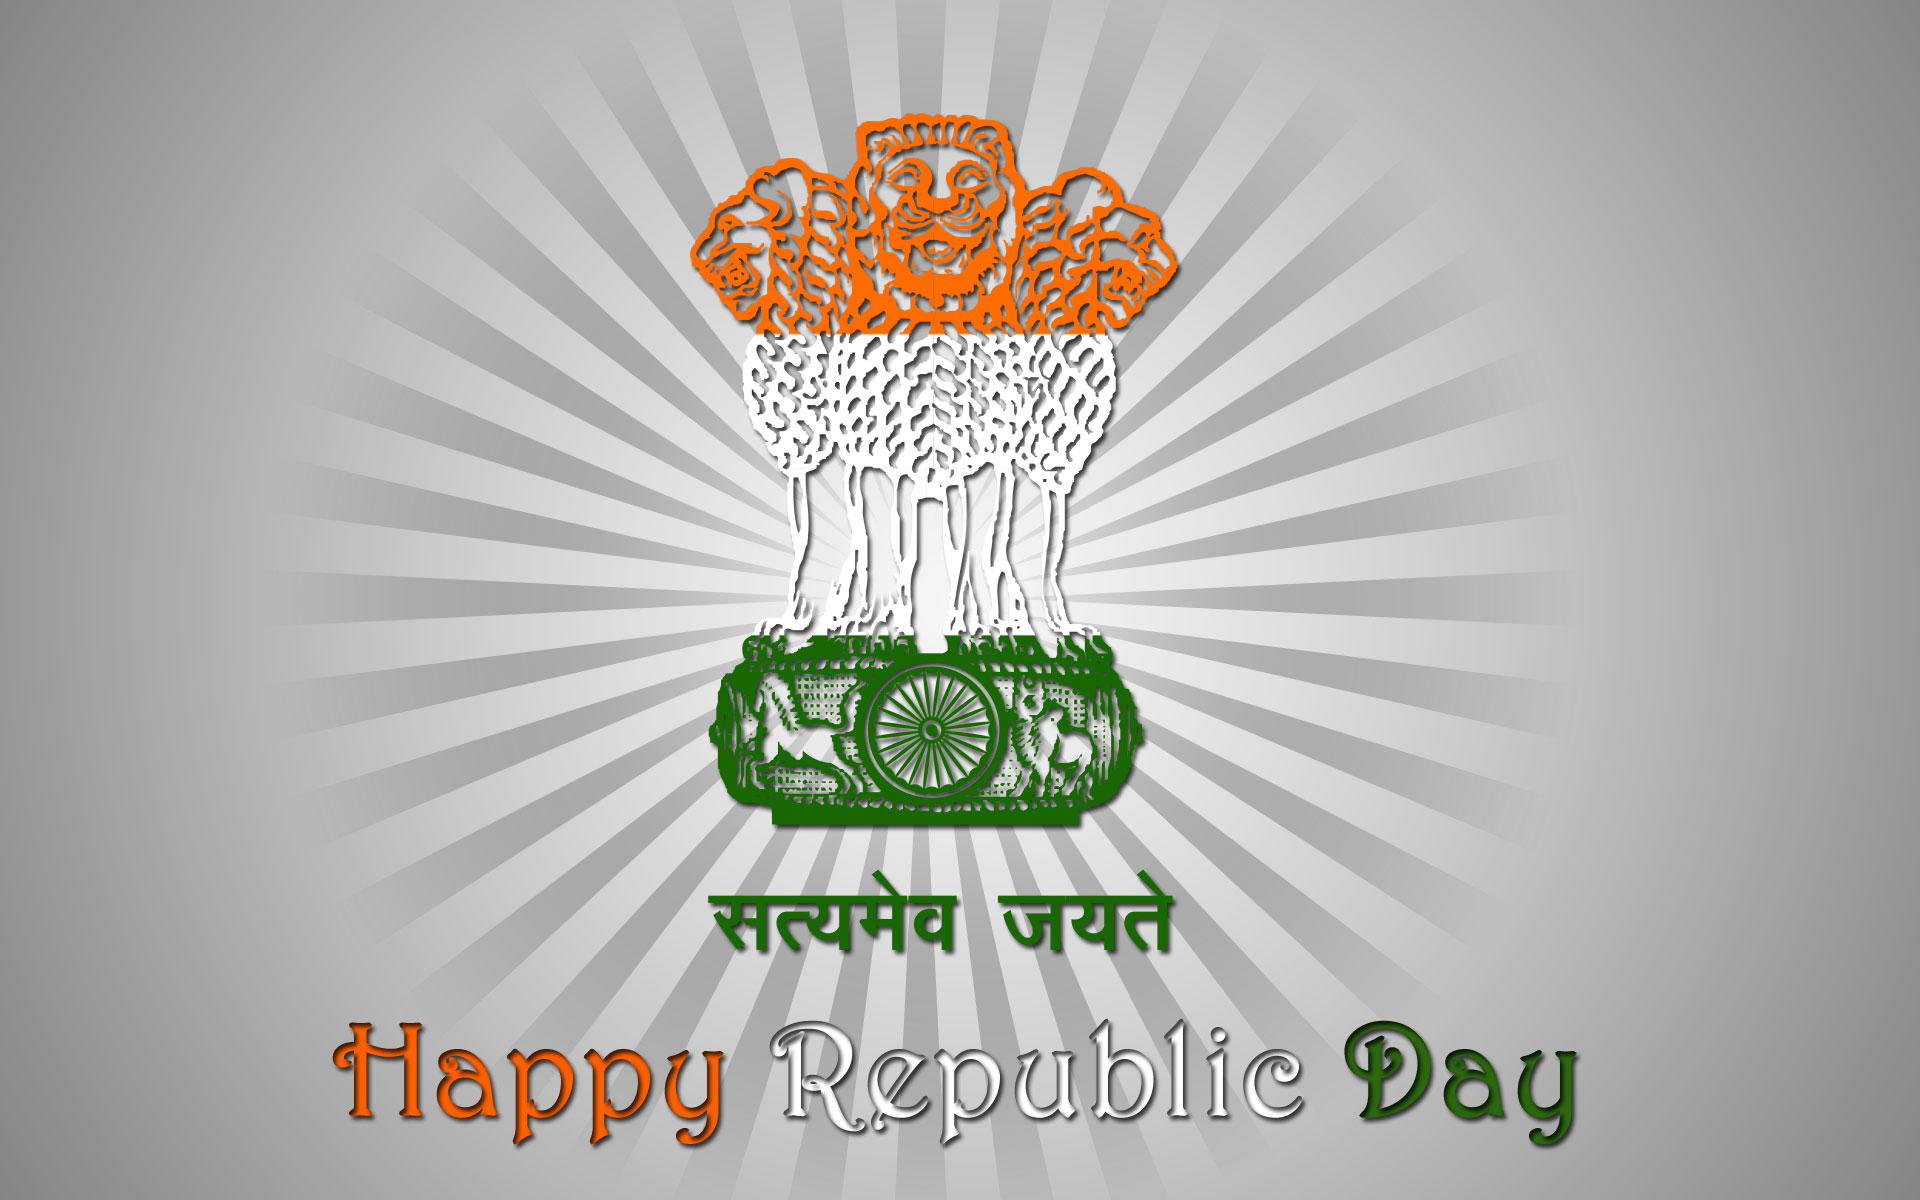 26 Jan Republic Day hd Wallpapers